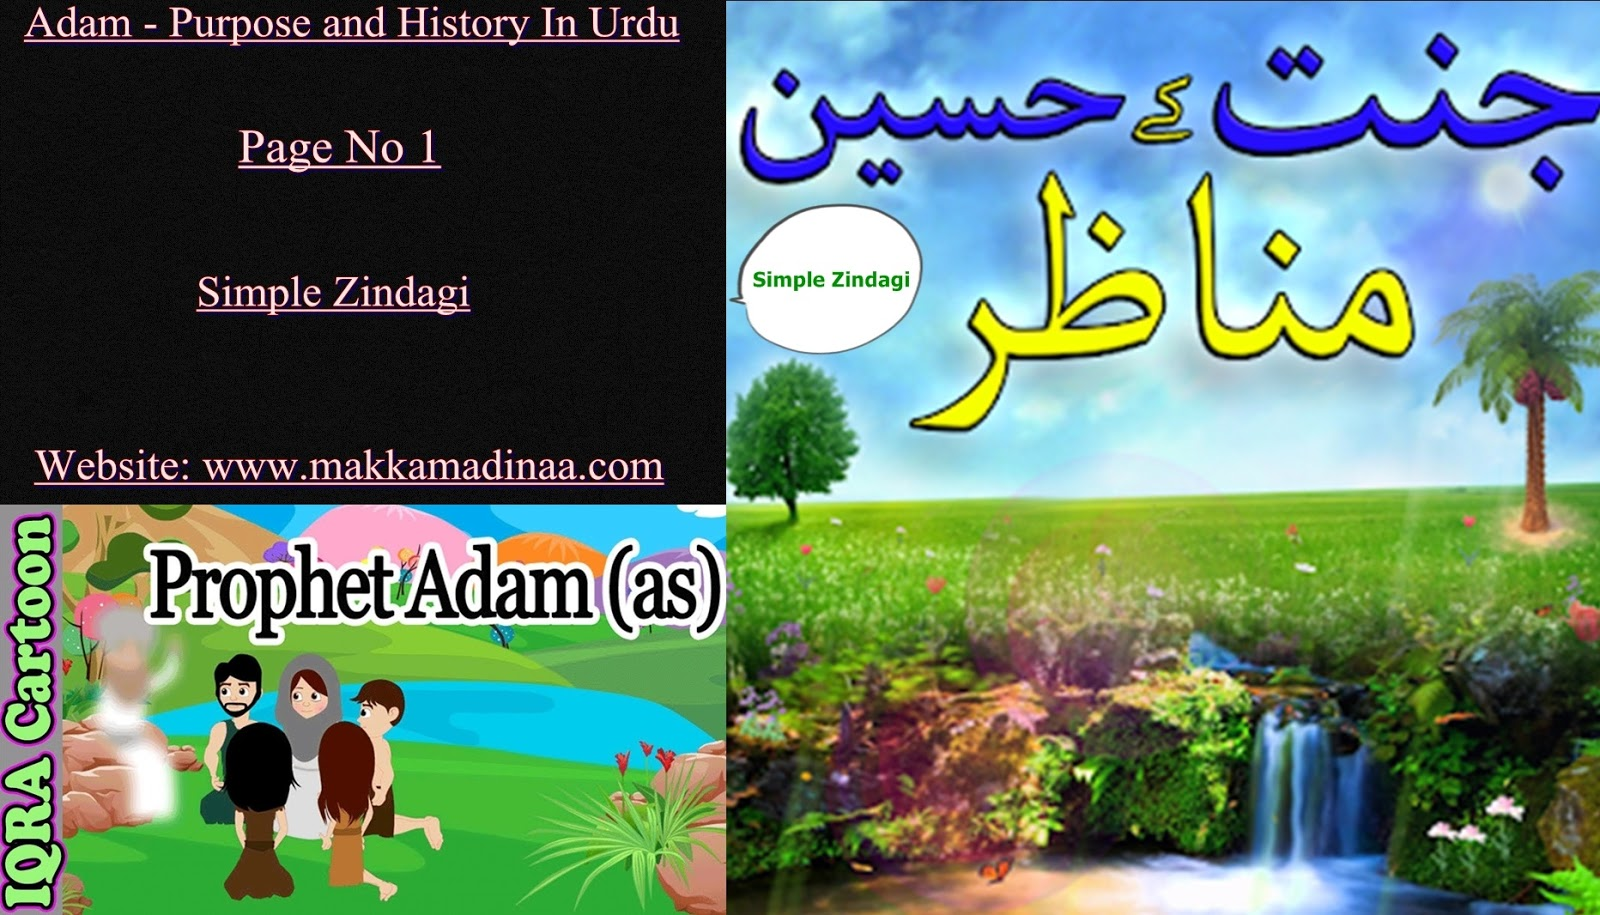 Adam - Purpose and History In Urdu hazrat adam history in urdu  adam ali salam history in hindi  hazrat adam date of birth  adam and hawa story  hazrat adam alaihis salam history  hazrat adam alaihis salam ka waqia in urdu pdf  hazrat adam ali salam ka kissa  adam ali salam height